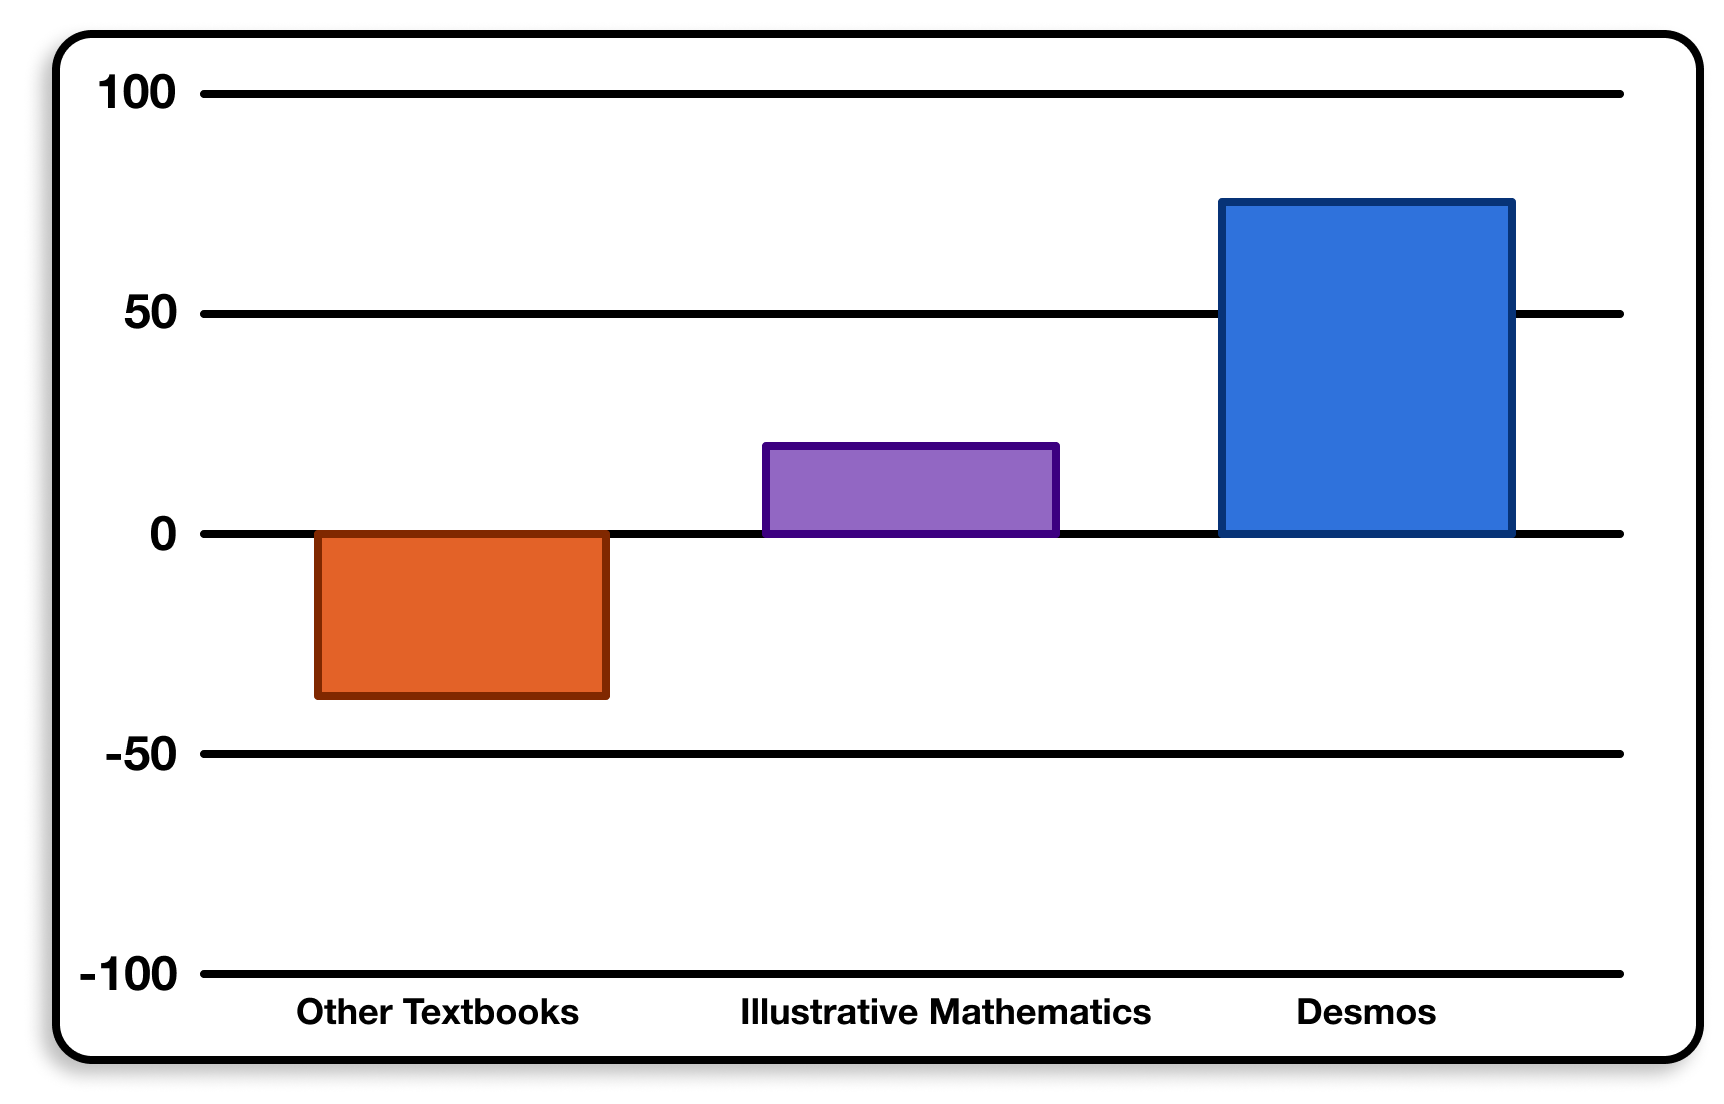 Desmos outscoring all other curriculum for Net Promoter Score.